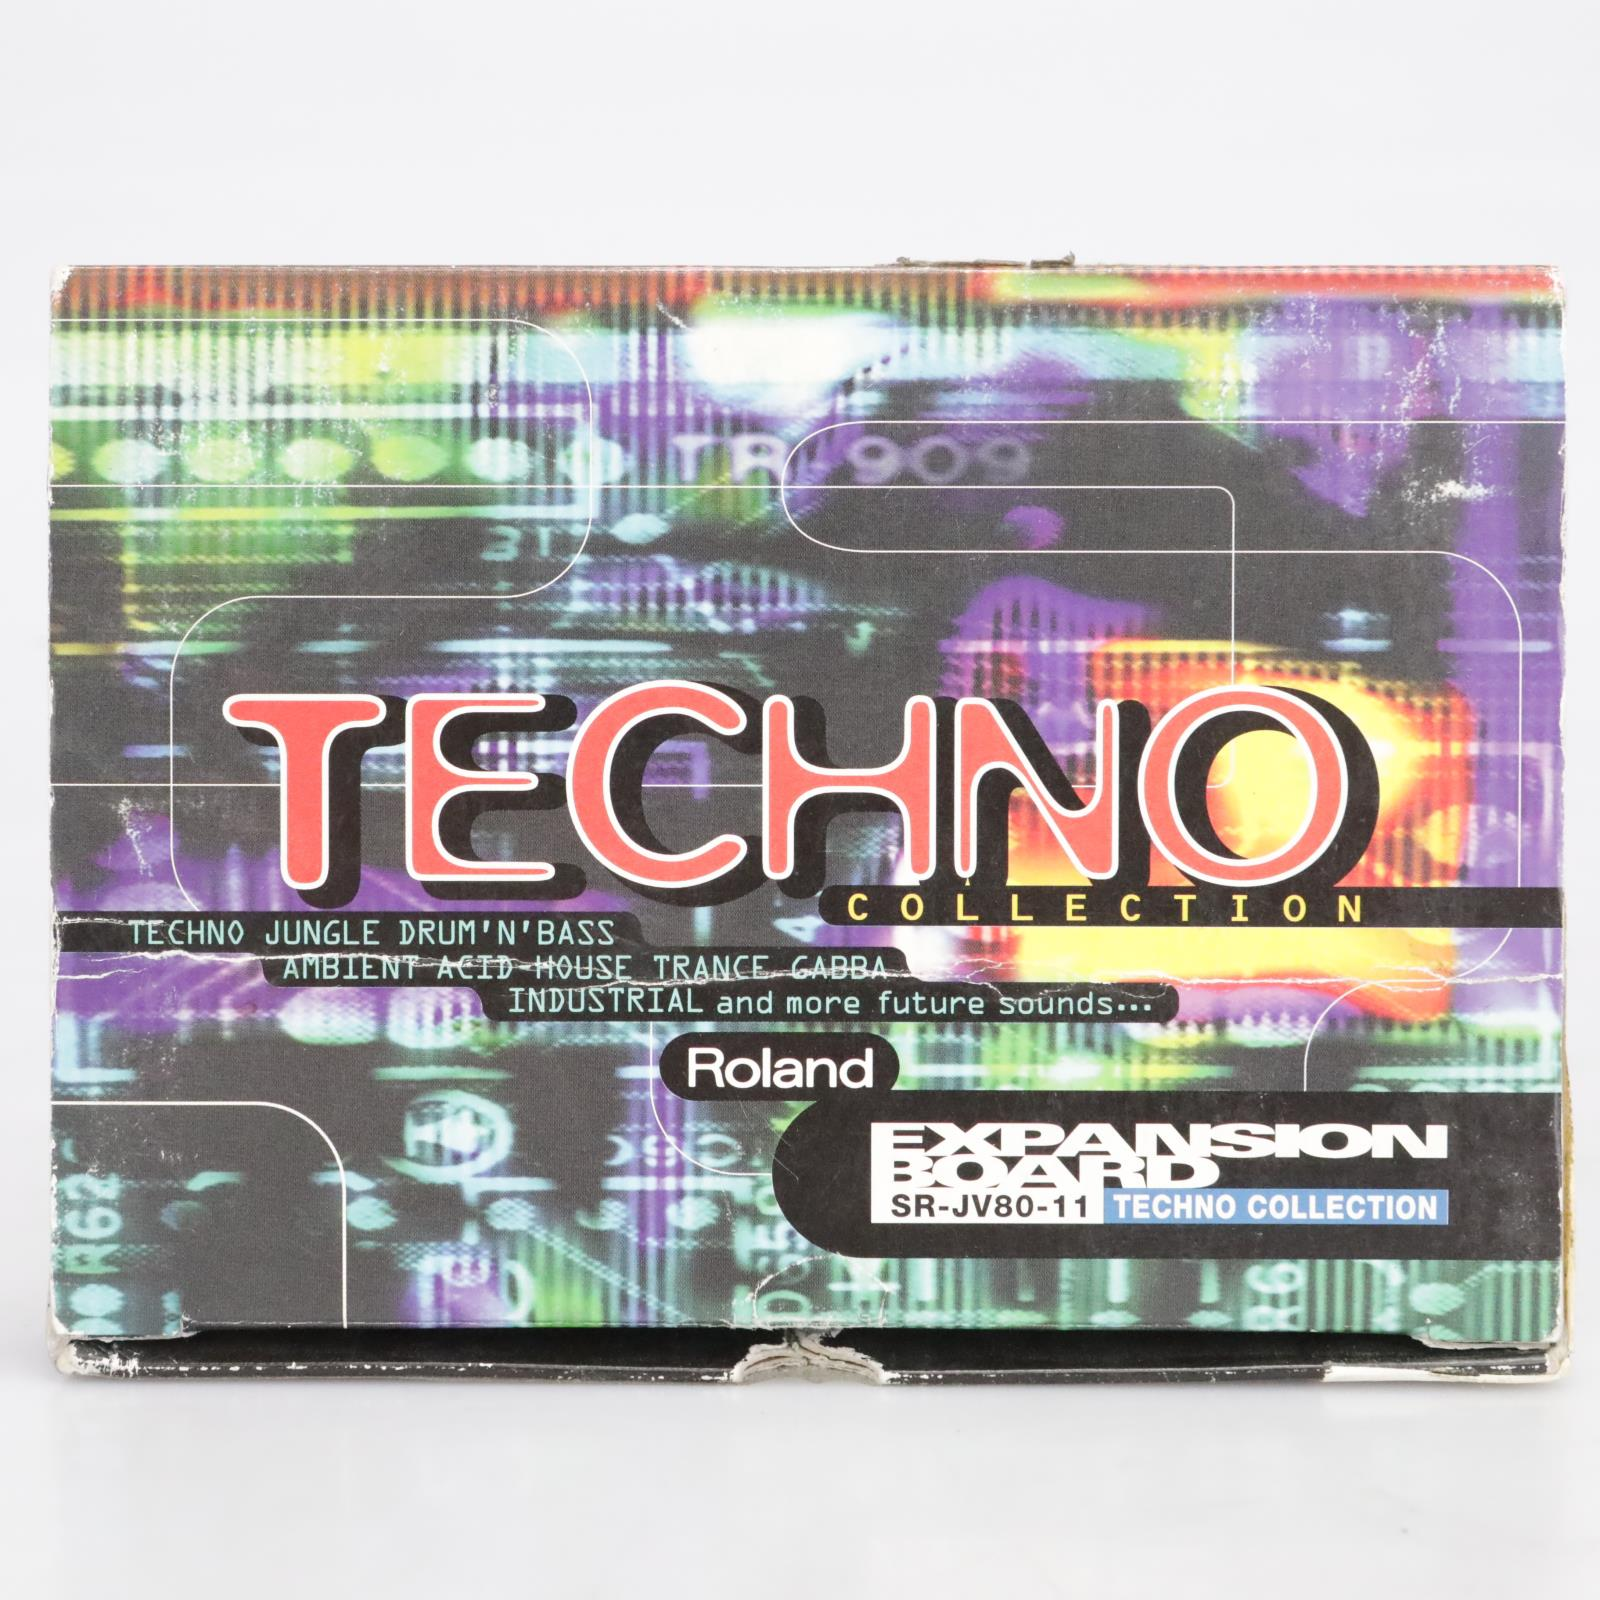 Roland SR-JV80-11 Techno Collection Expansion Board ON LOAN TO JOSH RALPH #41703